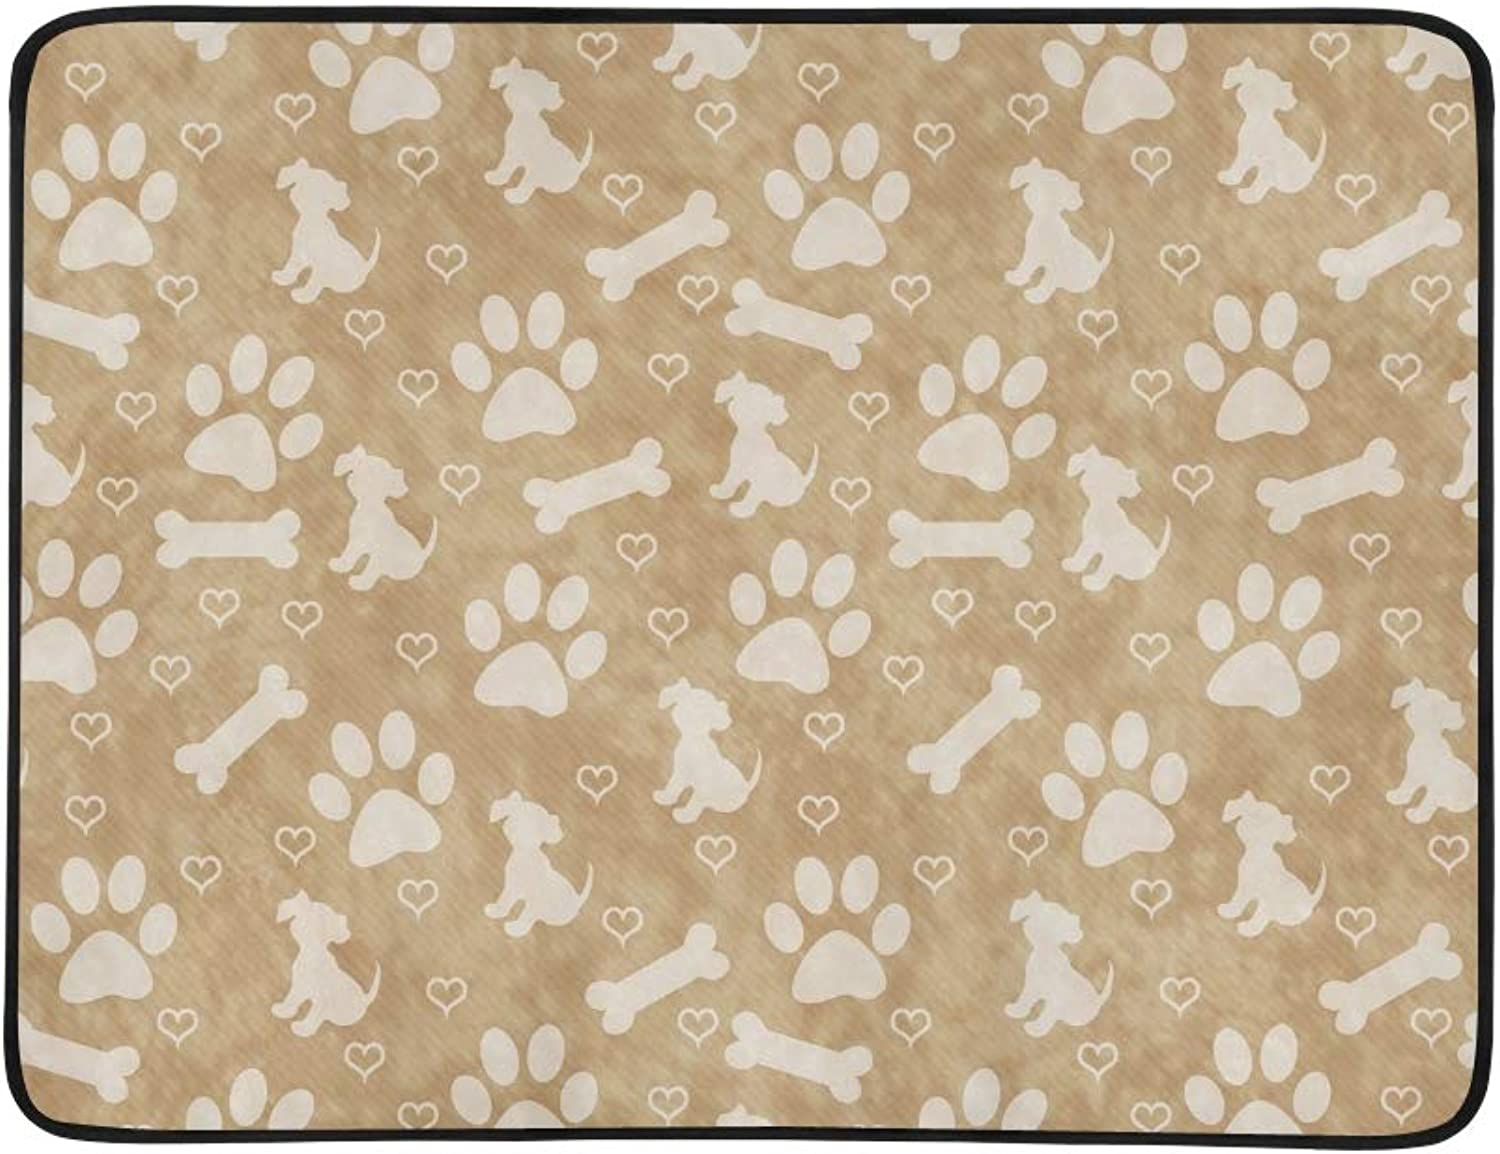 Brown Dog Paw Prints Puppy Bone Portable and Foldable Blanket Mat 60x78 Inch Handy Mat for Camping Picnic Beach Indoor Outdoor Travel